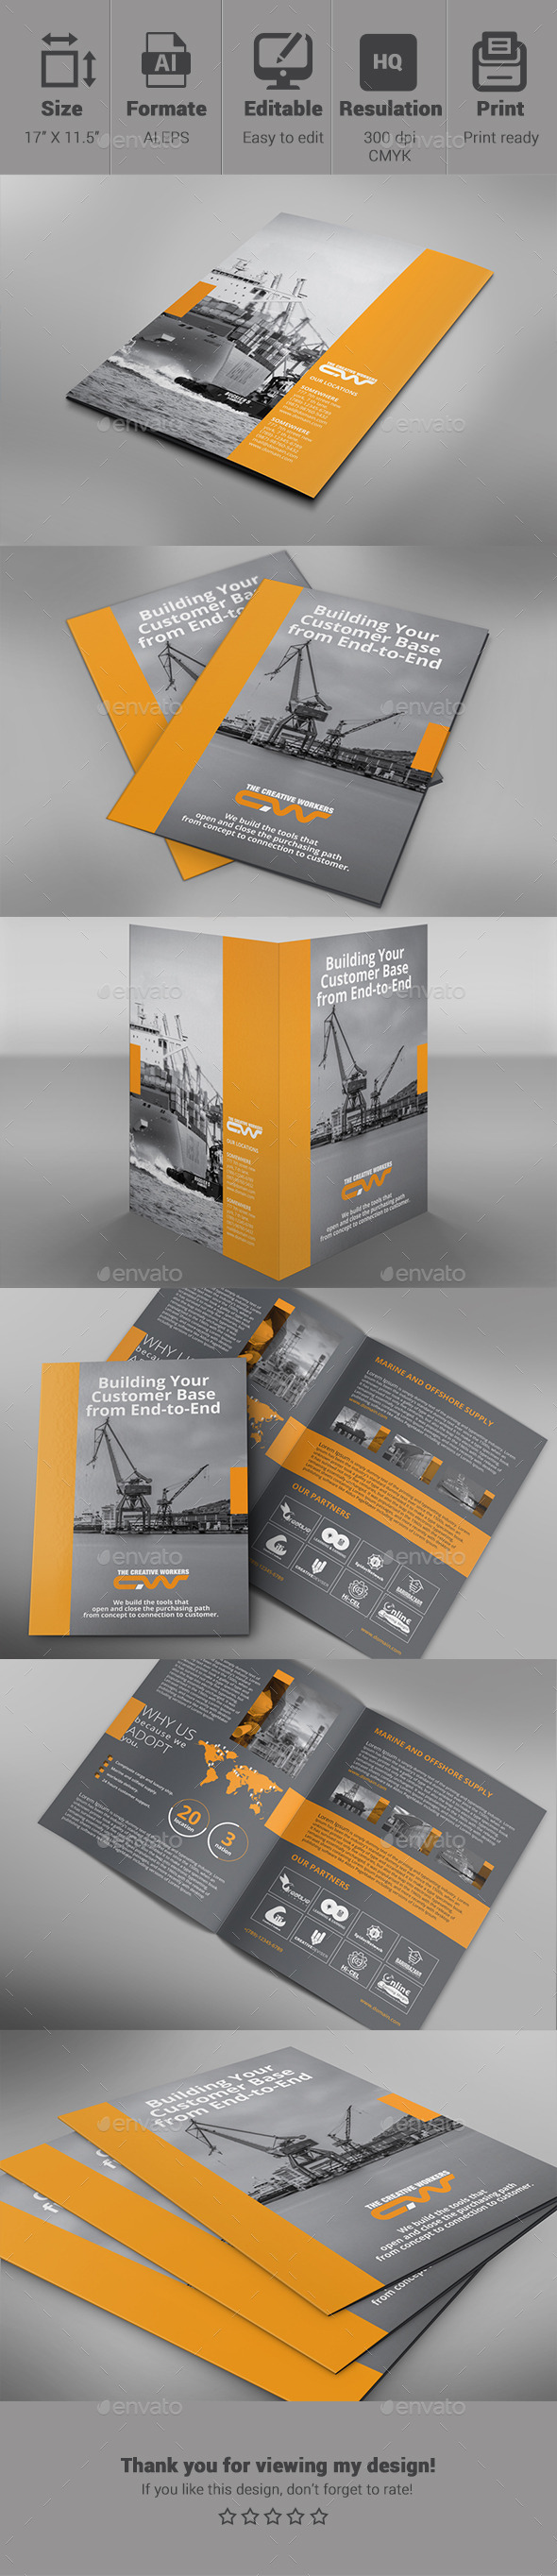 GraphicRiver Bifold Shipyard Template 10716967